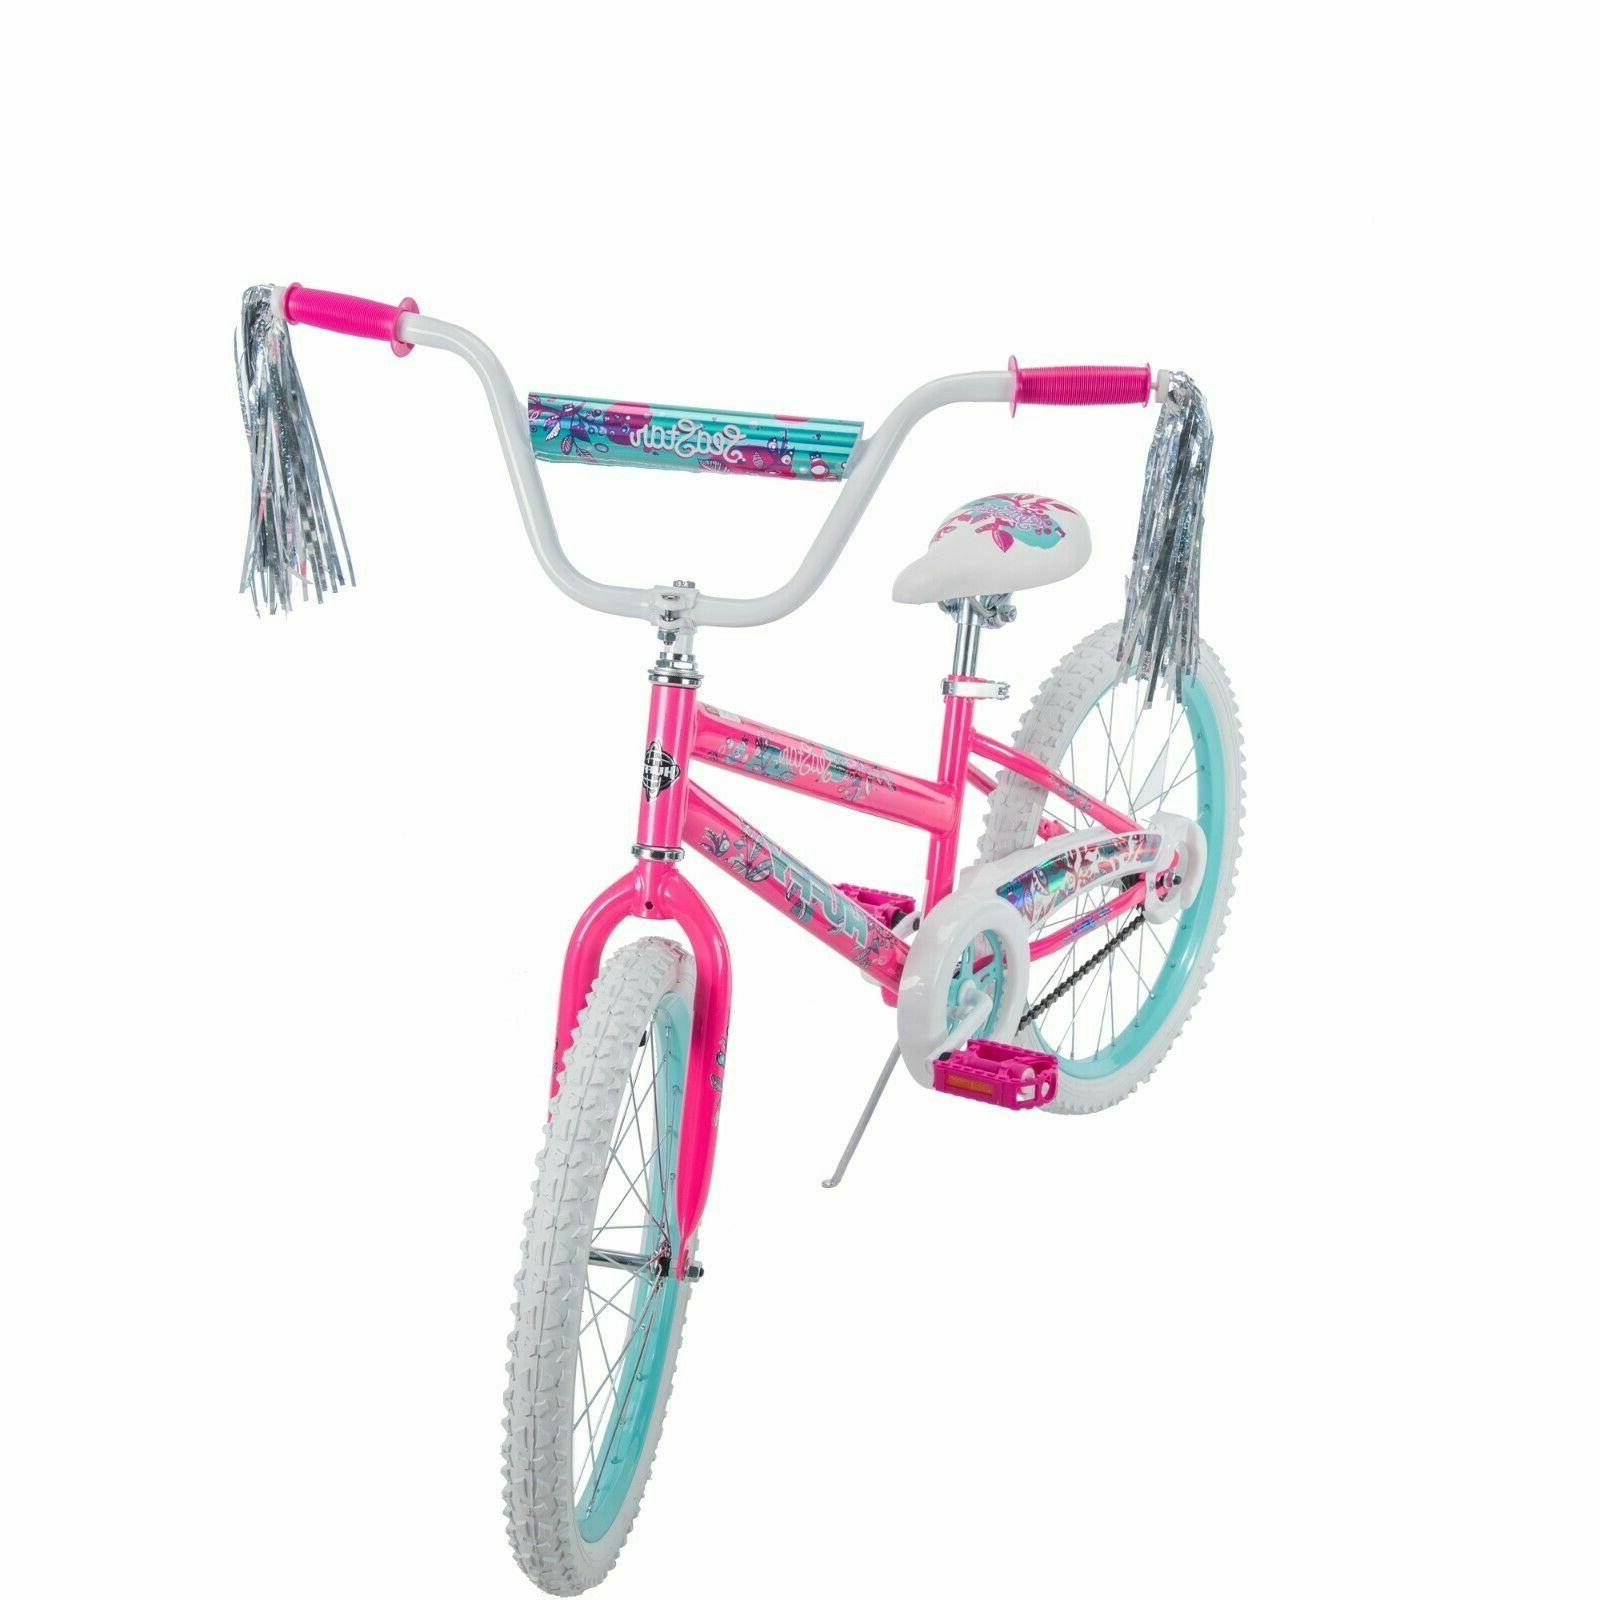 "Huffy 20"" Girls' Light Blue"